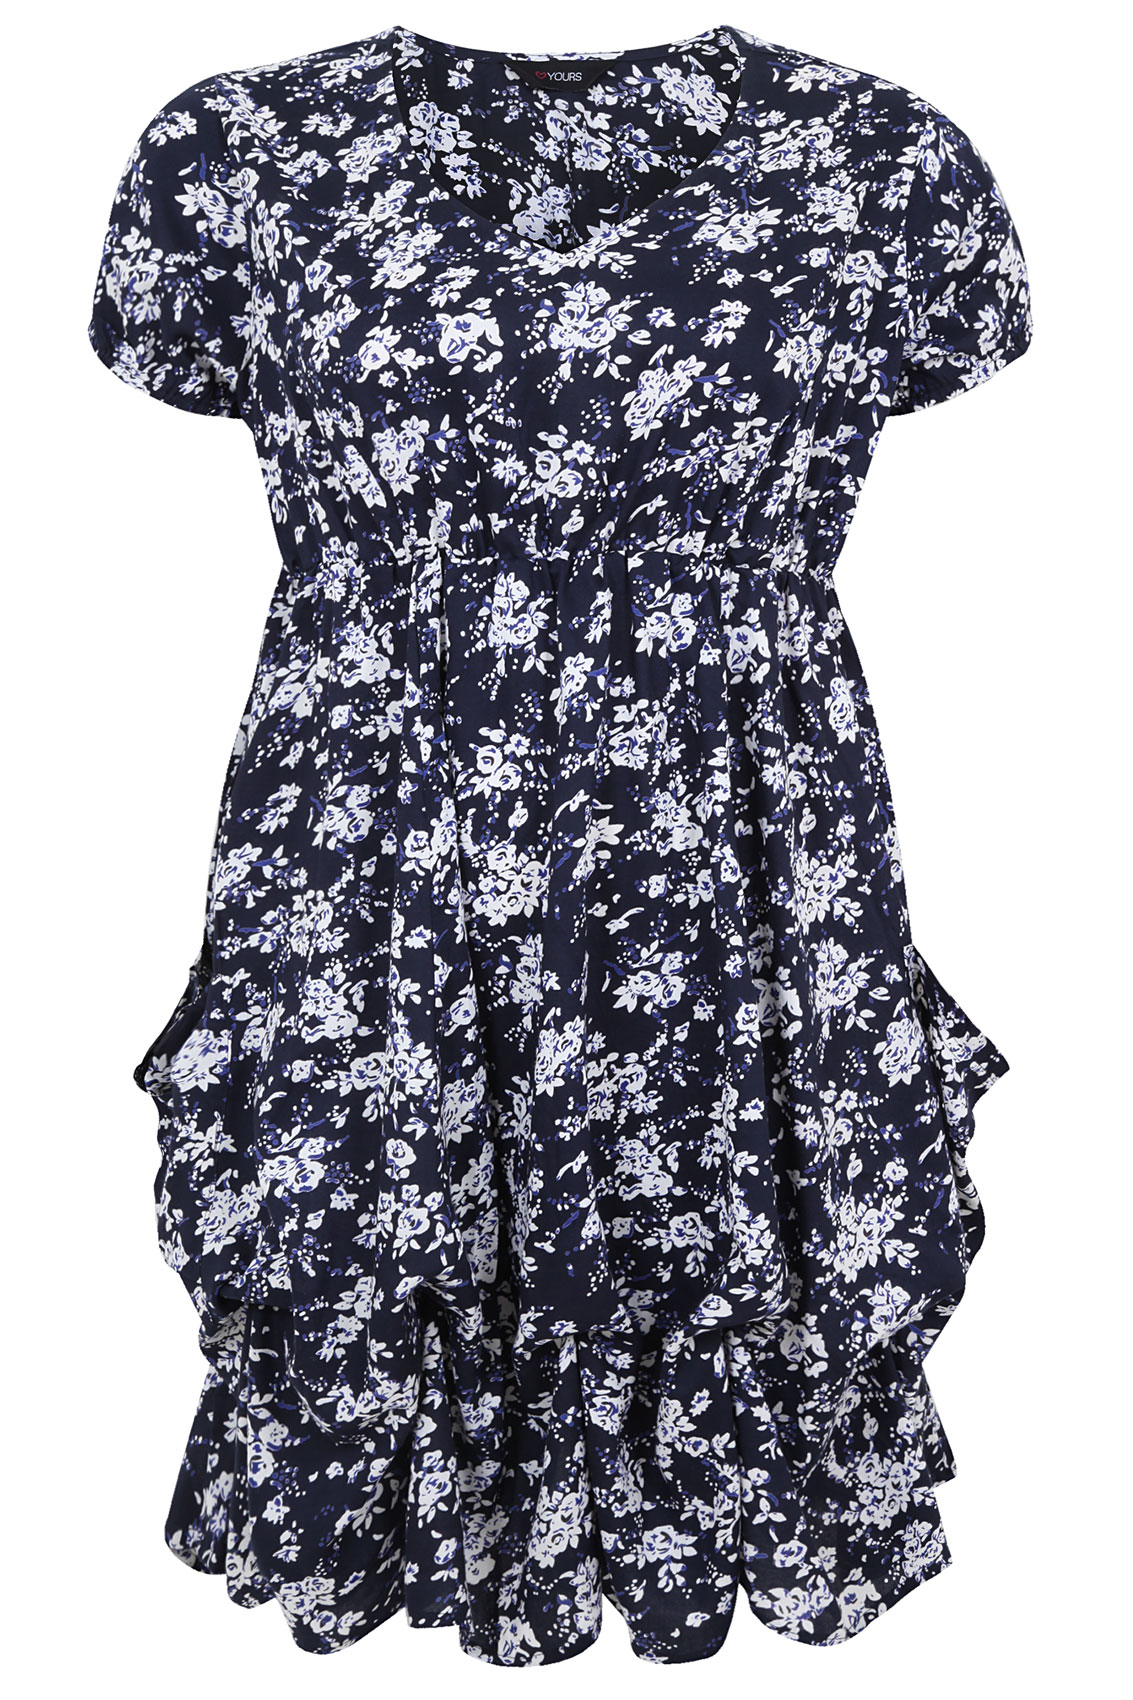 Navy Ditsy Floral Print Tunic Dress With Frilled Hem plus size 14,16 ...